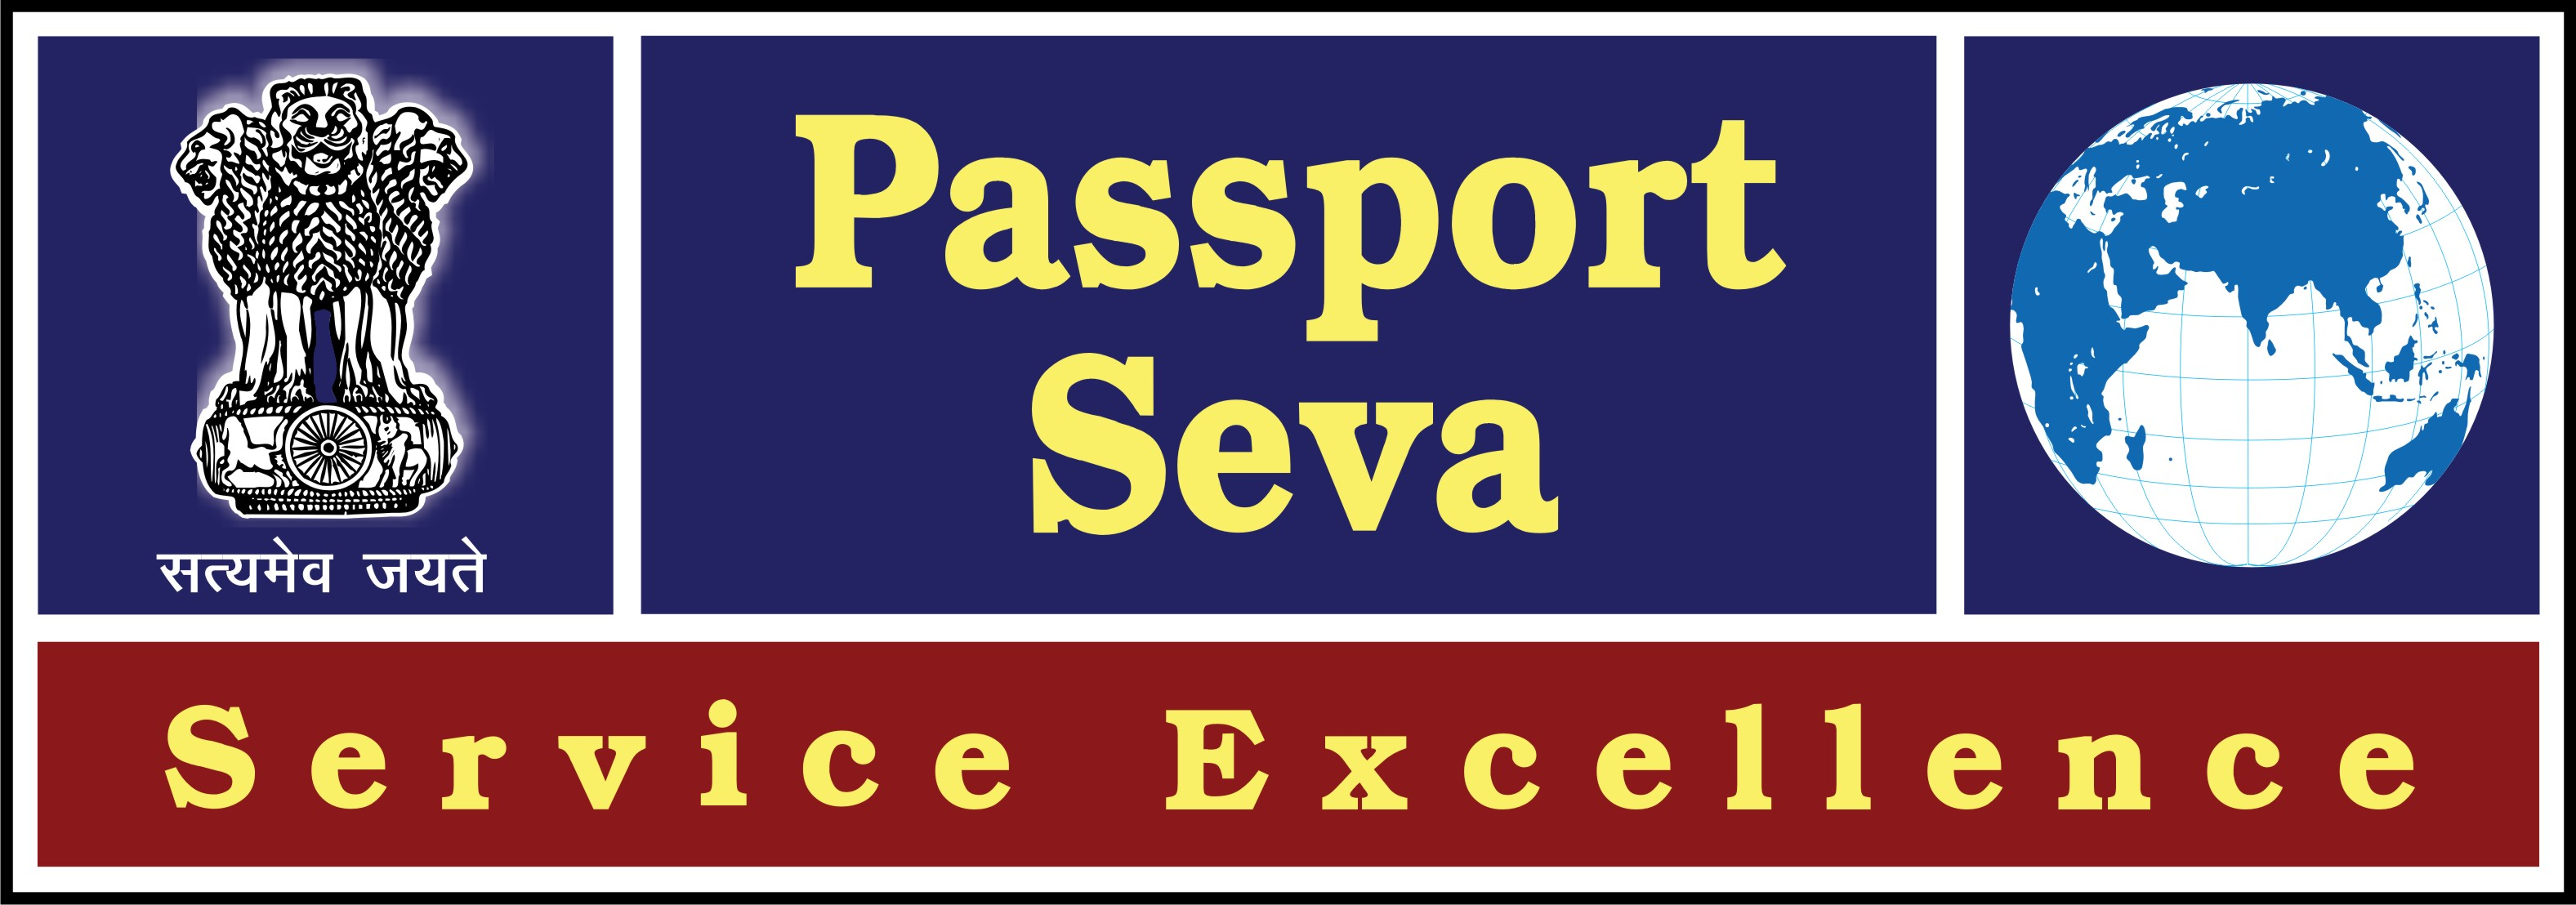 PASSPORT SEVA - REFORMS BRING IN EVOLUTIONARY IMPROVEMENTS IN SERVICES